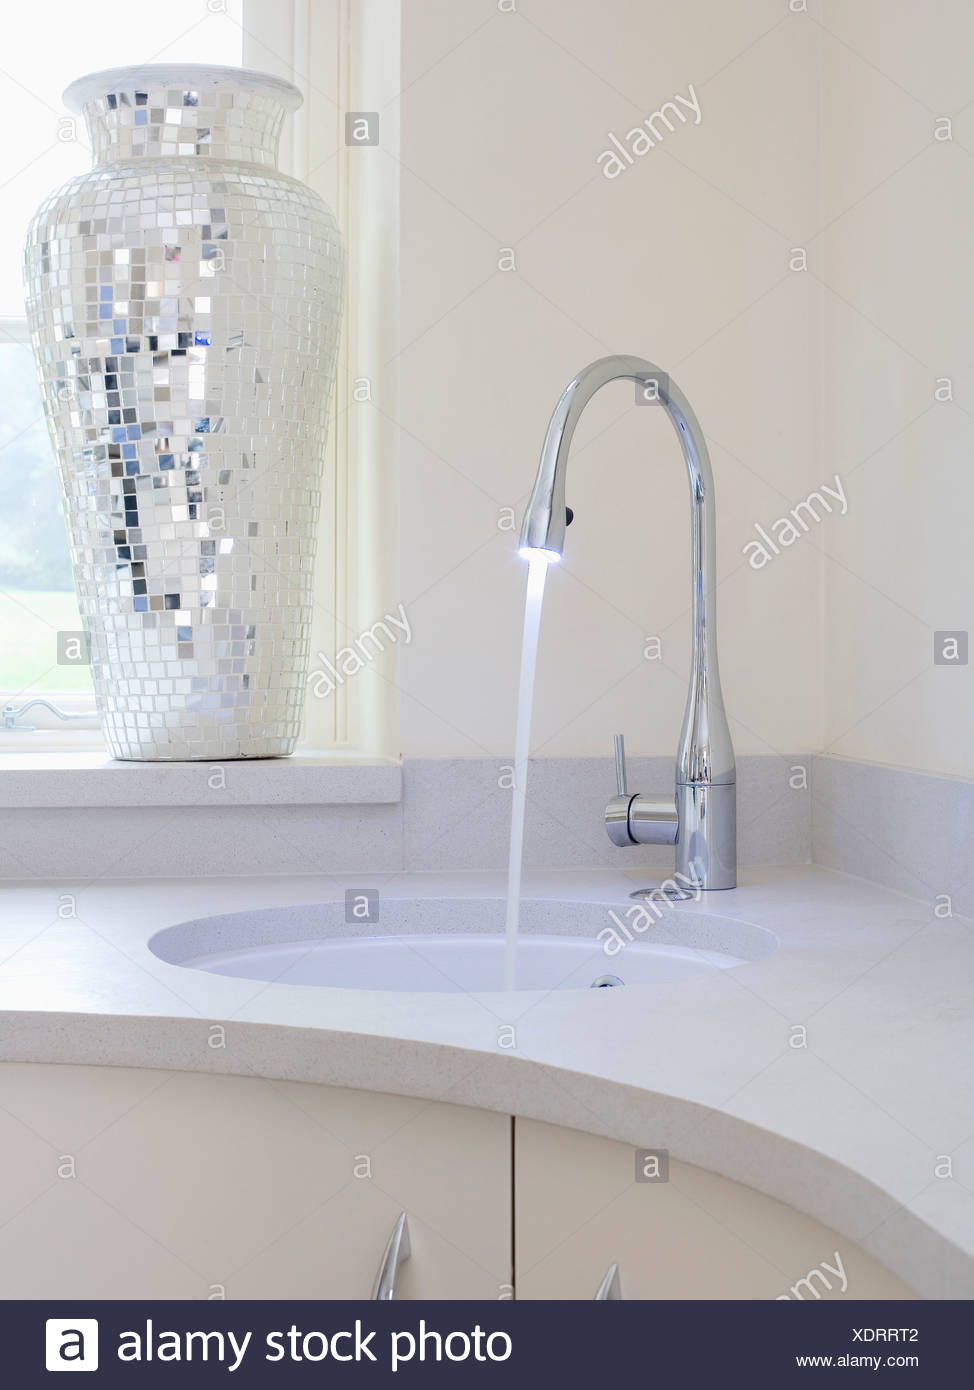 Close-up of mixer tap pouring water into under-set bathroom basin in ...